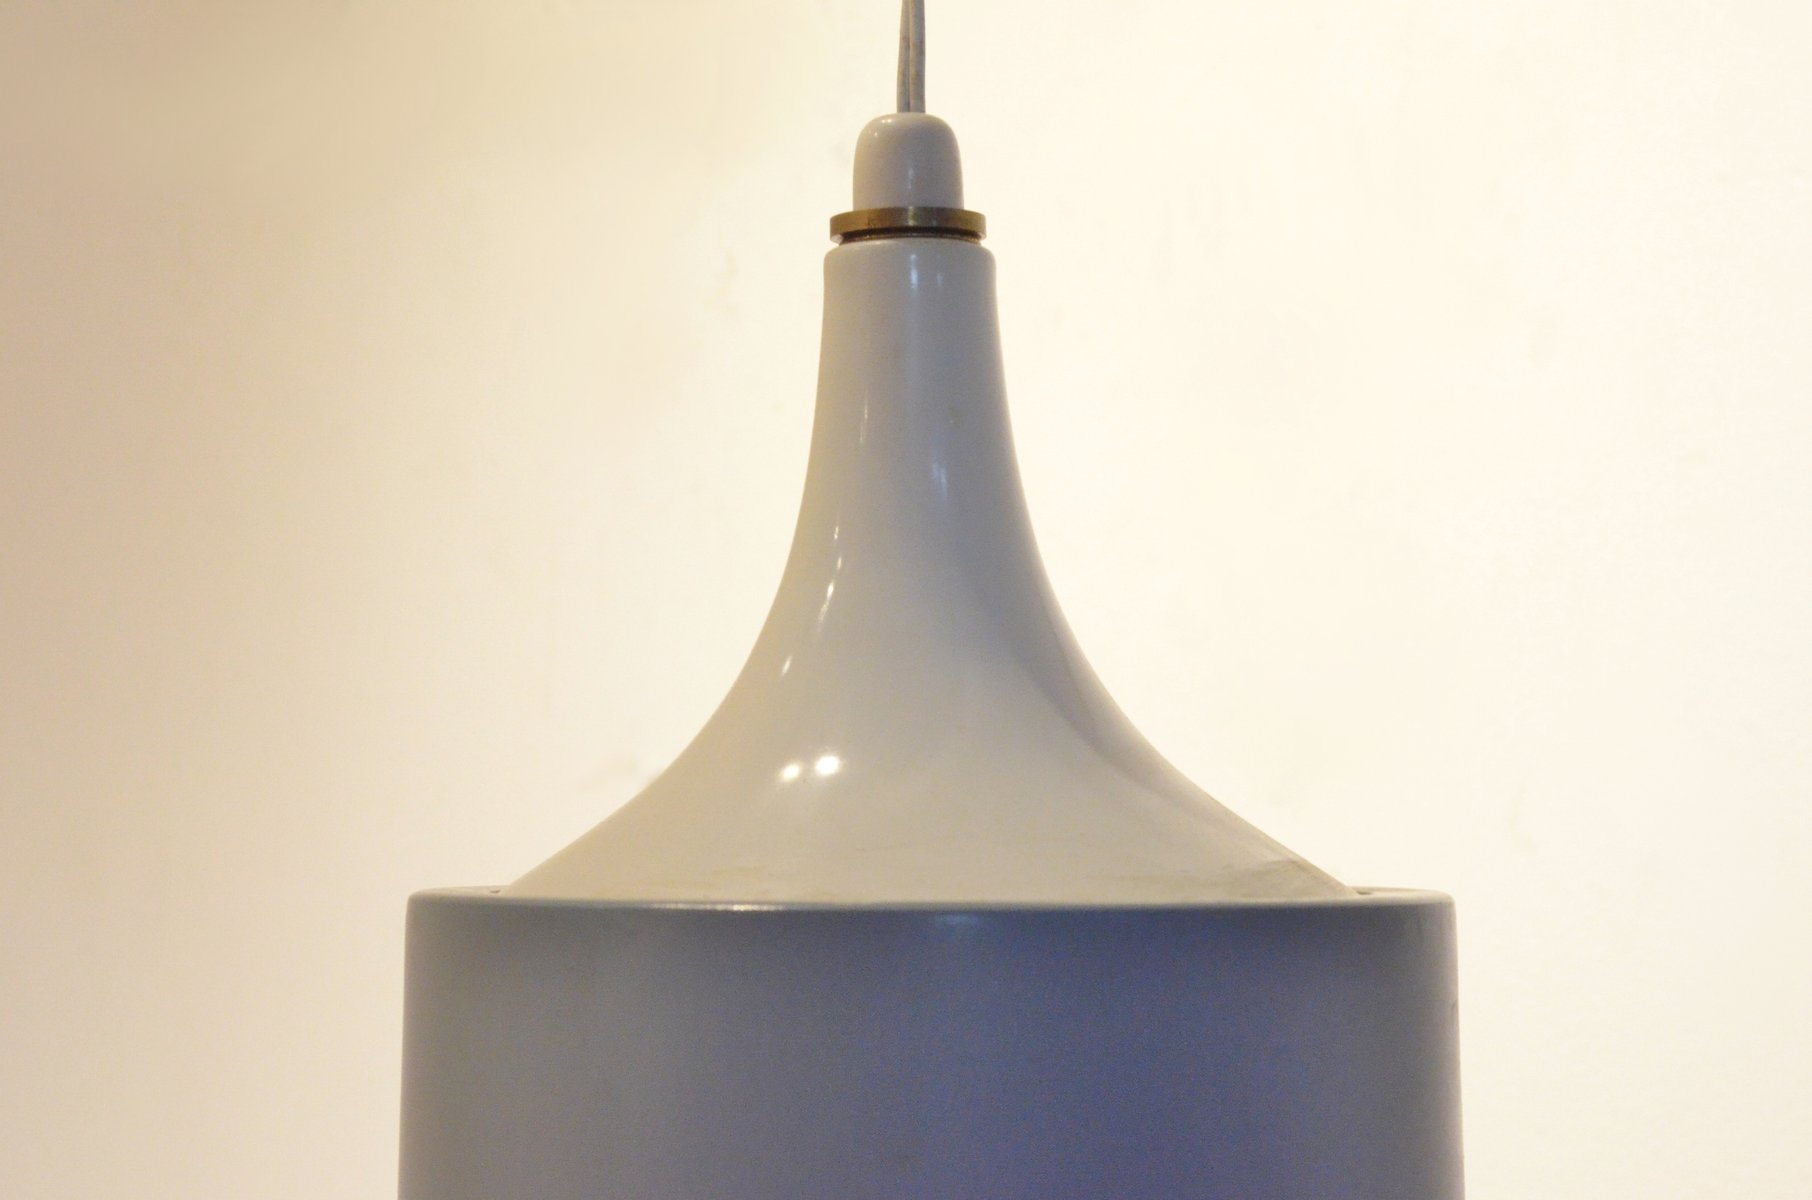 Mid Century Danish Brass & Grey Metal Wall Arm Lamp from Lyfa 1950s for sale at Pamono